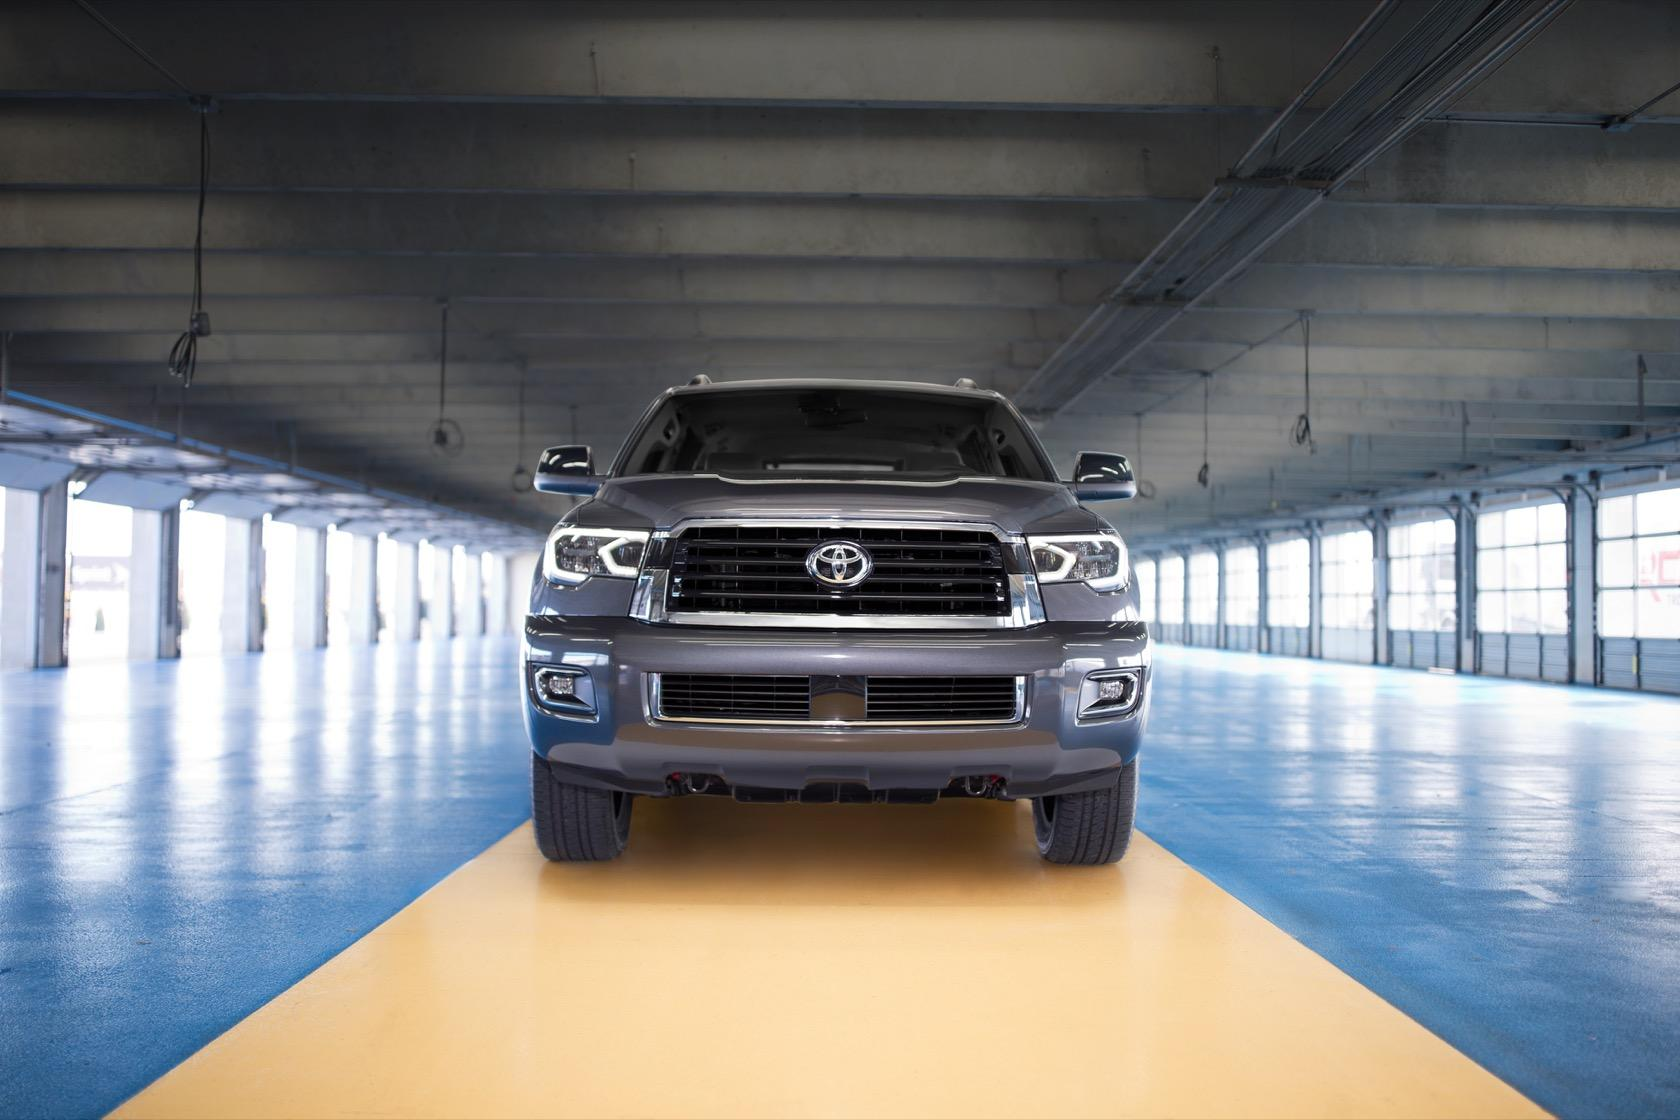 2018 Toyota Sequoia vs 2018 Chevrolet Tahoe vs 2018 Ford Expedition